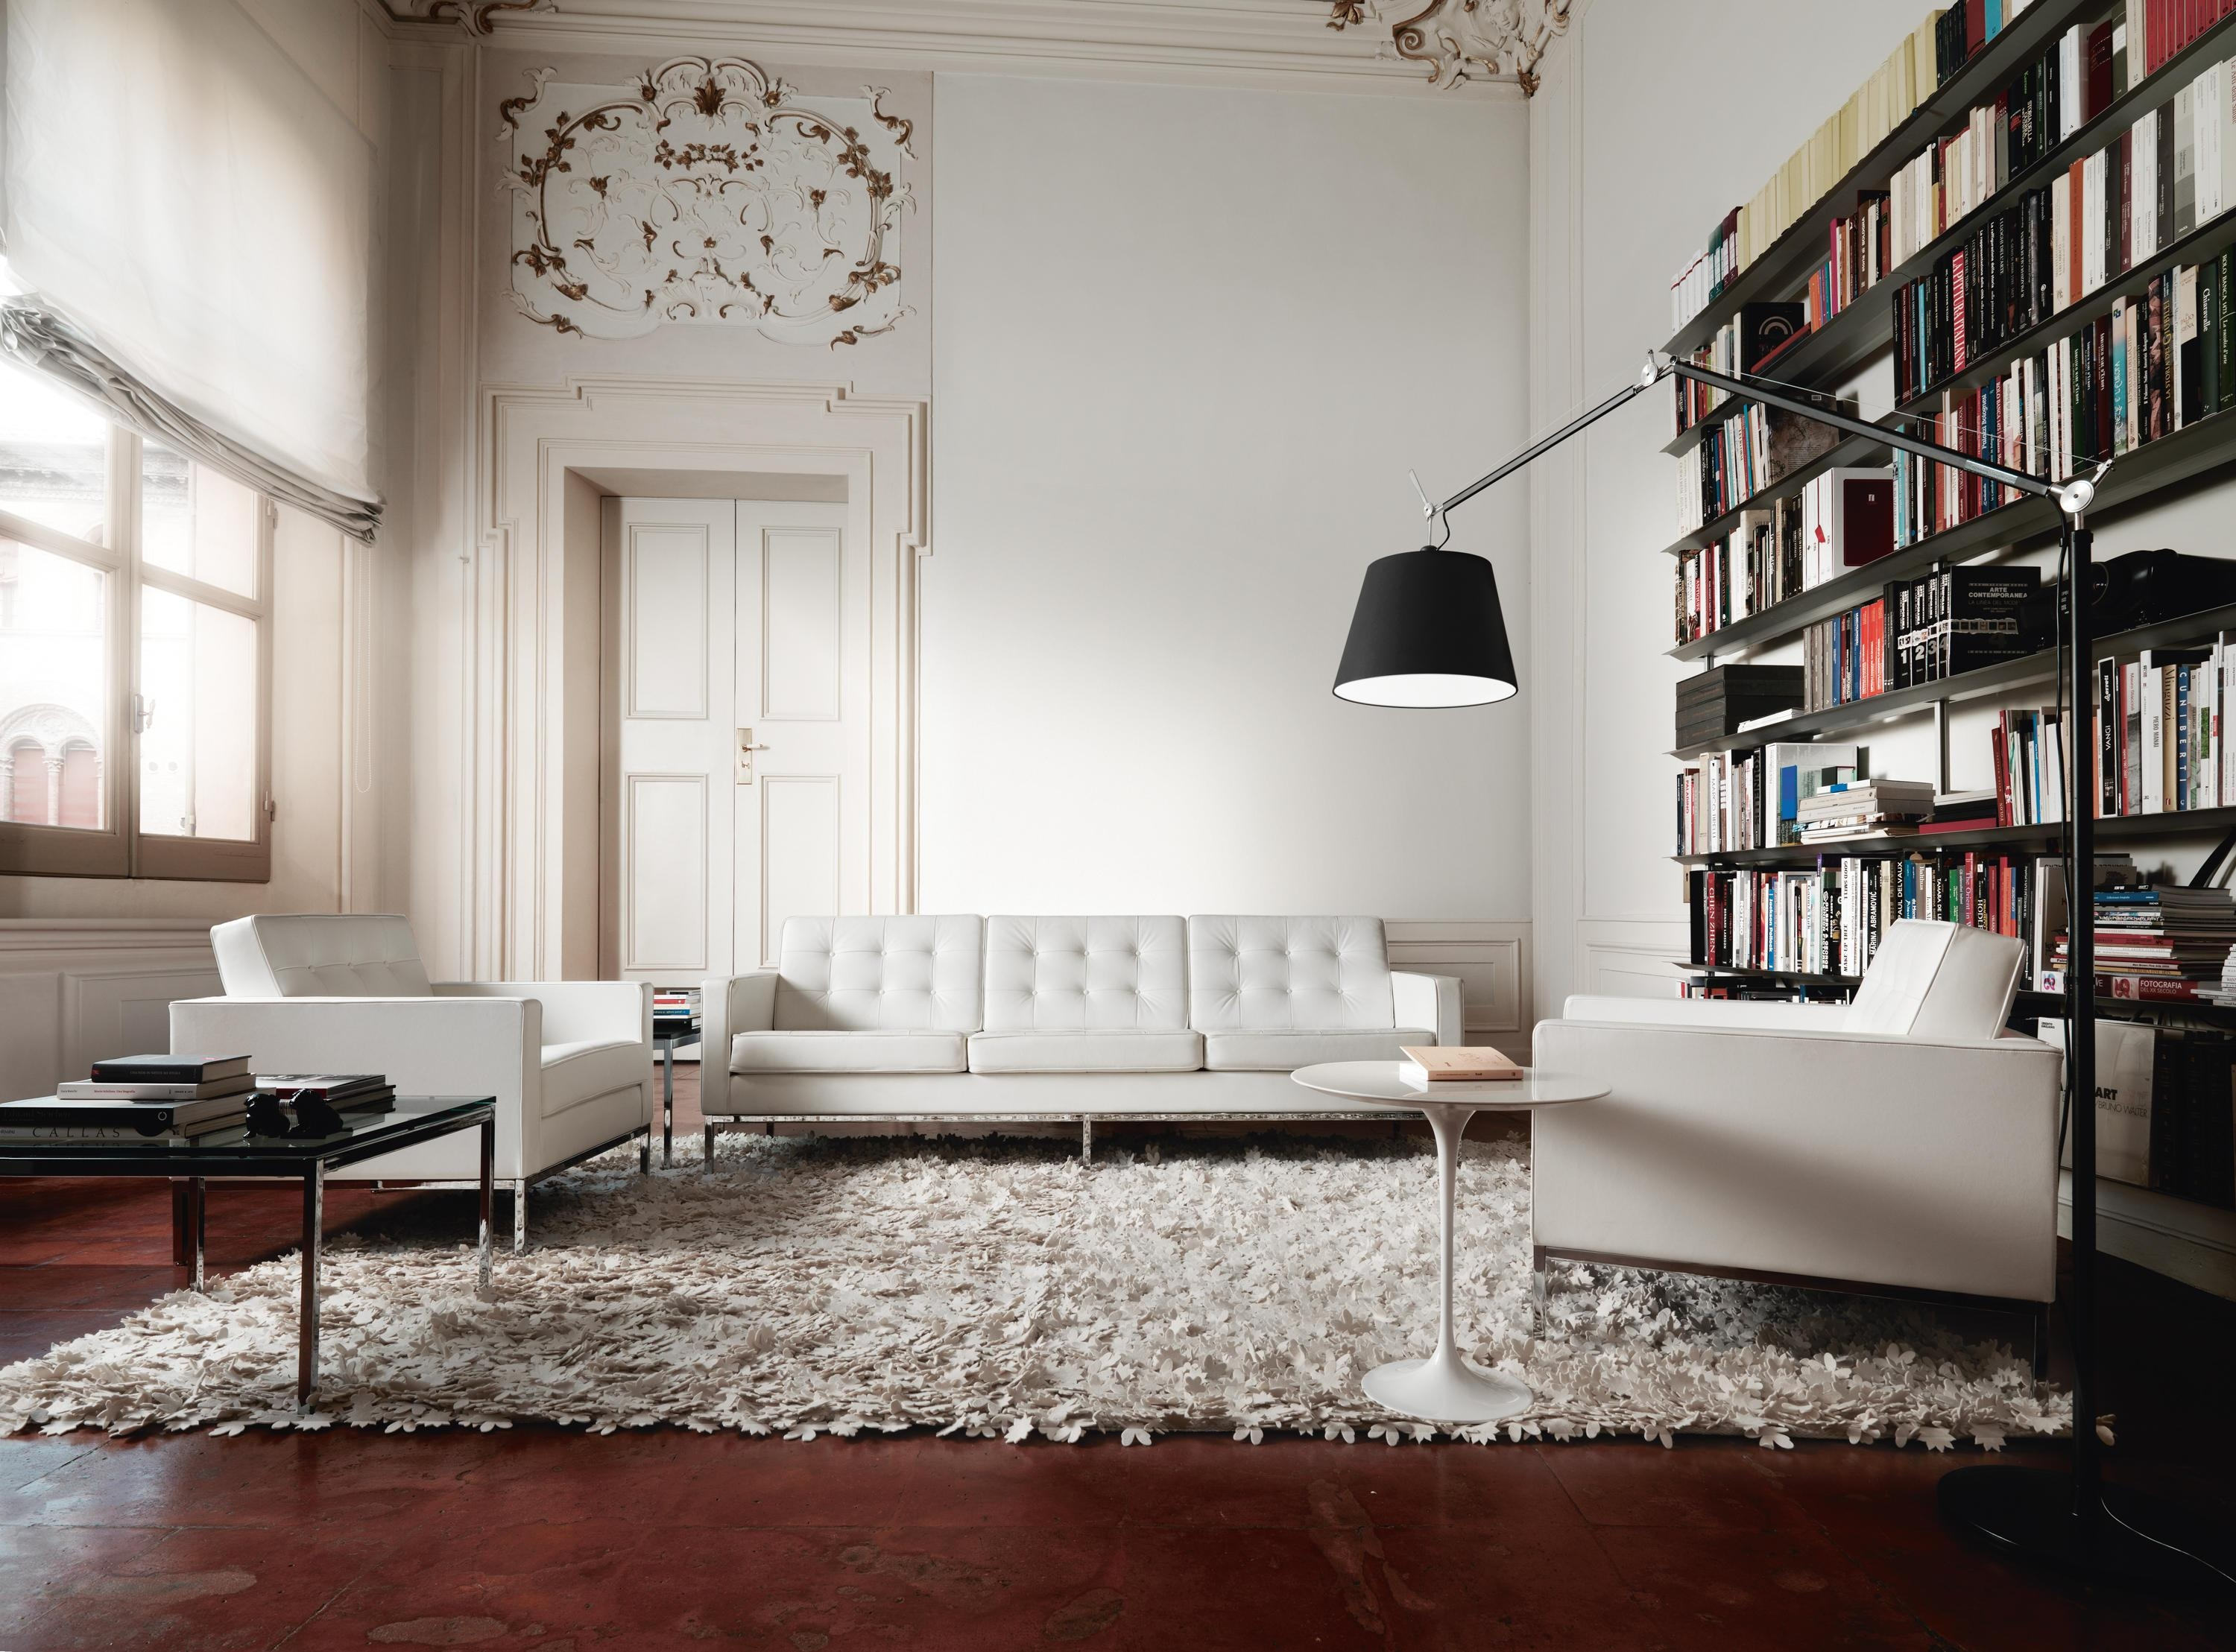 Florence Knoll Lounge 3 Seat Sofa – Lounge Sofas From Knoll Pertaining To Florence Knoll Wood Legs Sofas (Image 9 of 20)